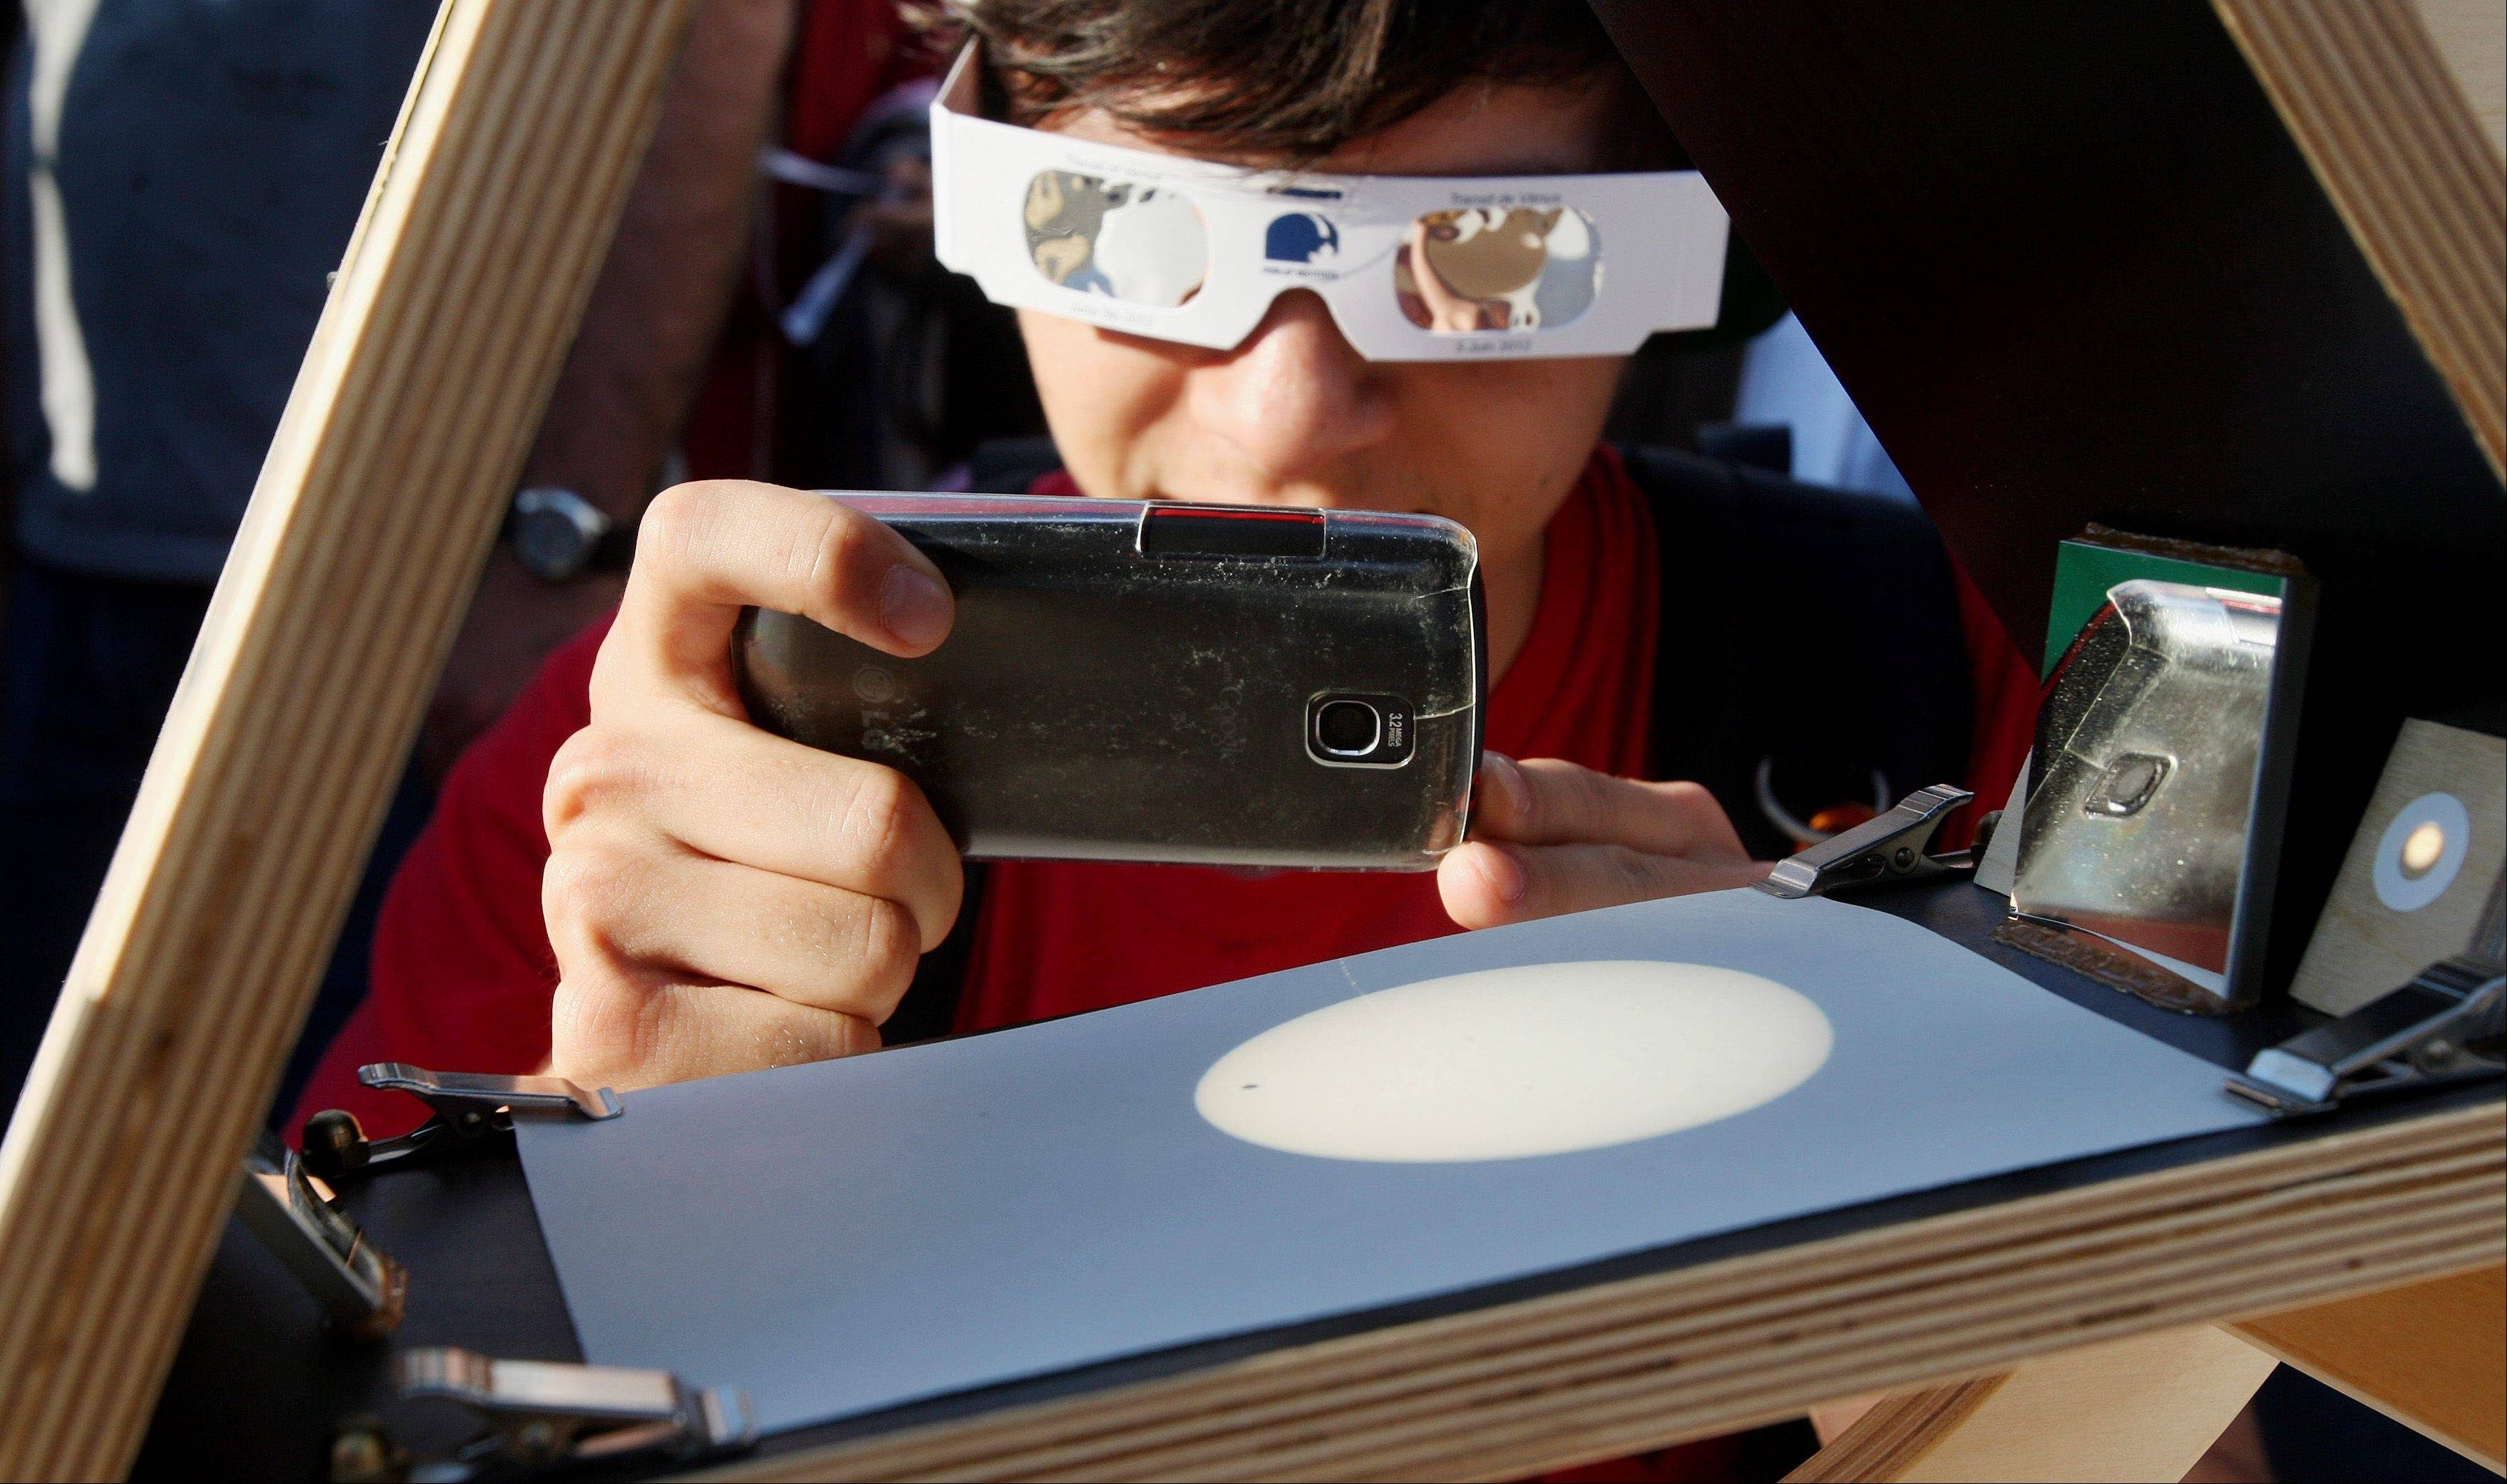 Matt Scott, still wearing protective glasses, tries to take a photo of a projected image of the sun as hundreds of people gather to watch the transit of Venus at the University of Western Ontario in London, Ontario on Tuesday, June 5, 2012. The rare event occurs when the planet Venus moves in front of the sun. The next time this will occur is in 105 years in 2117.